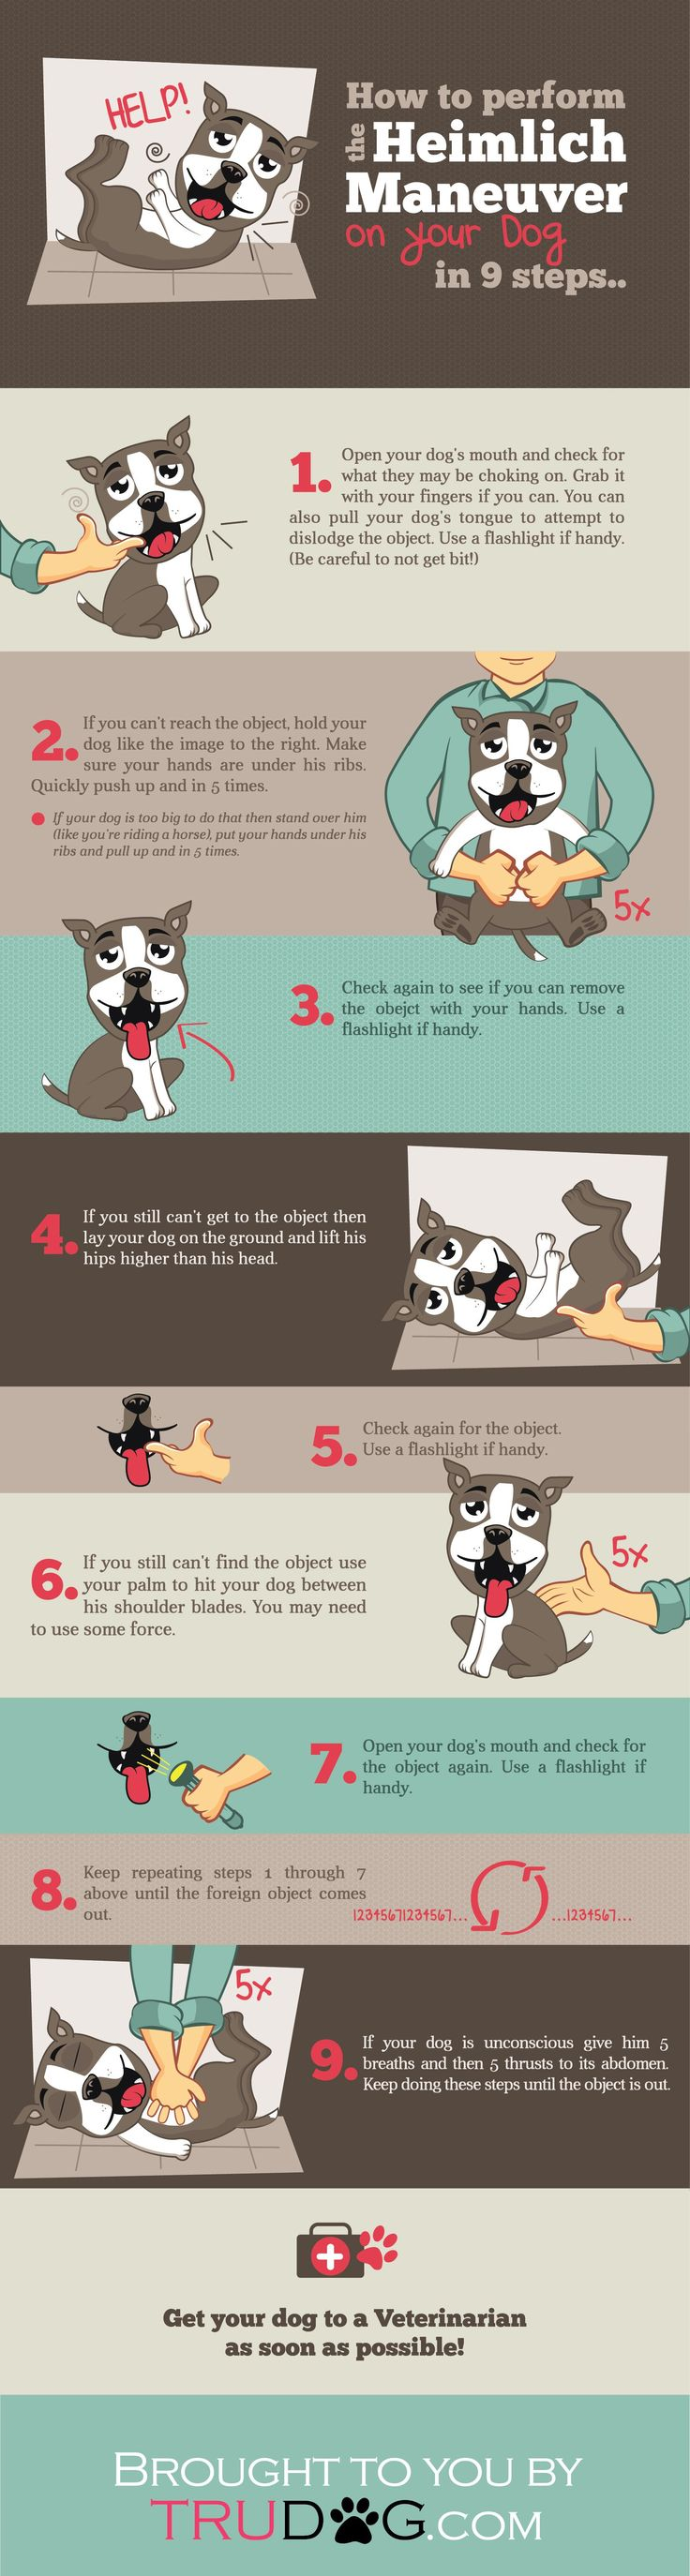 Best 25 dog heimlich ideas on pinterest cpr for dogs heimlich how to perform the heimlich maneuver on your dog in 9 steps xflitez Choice Image